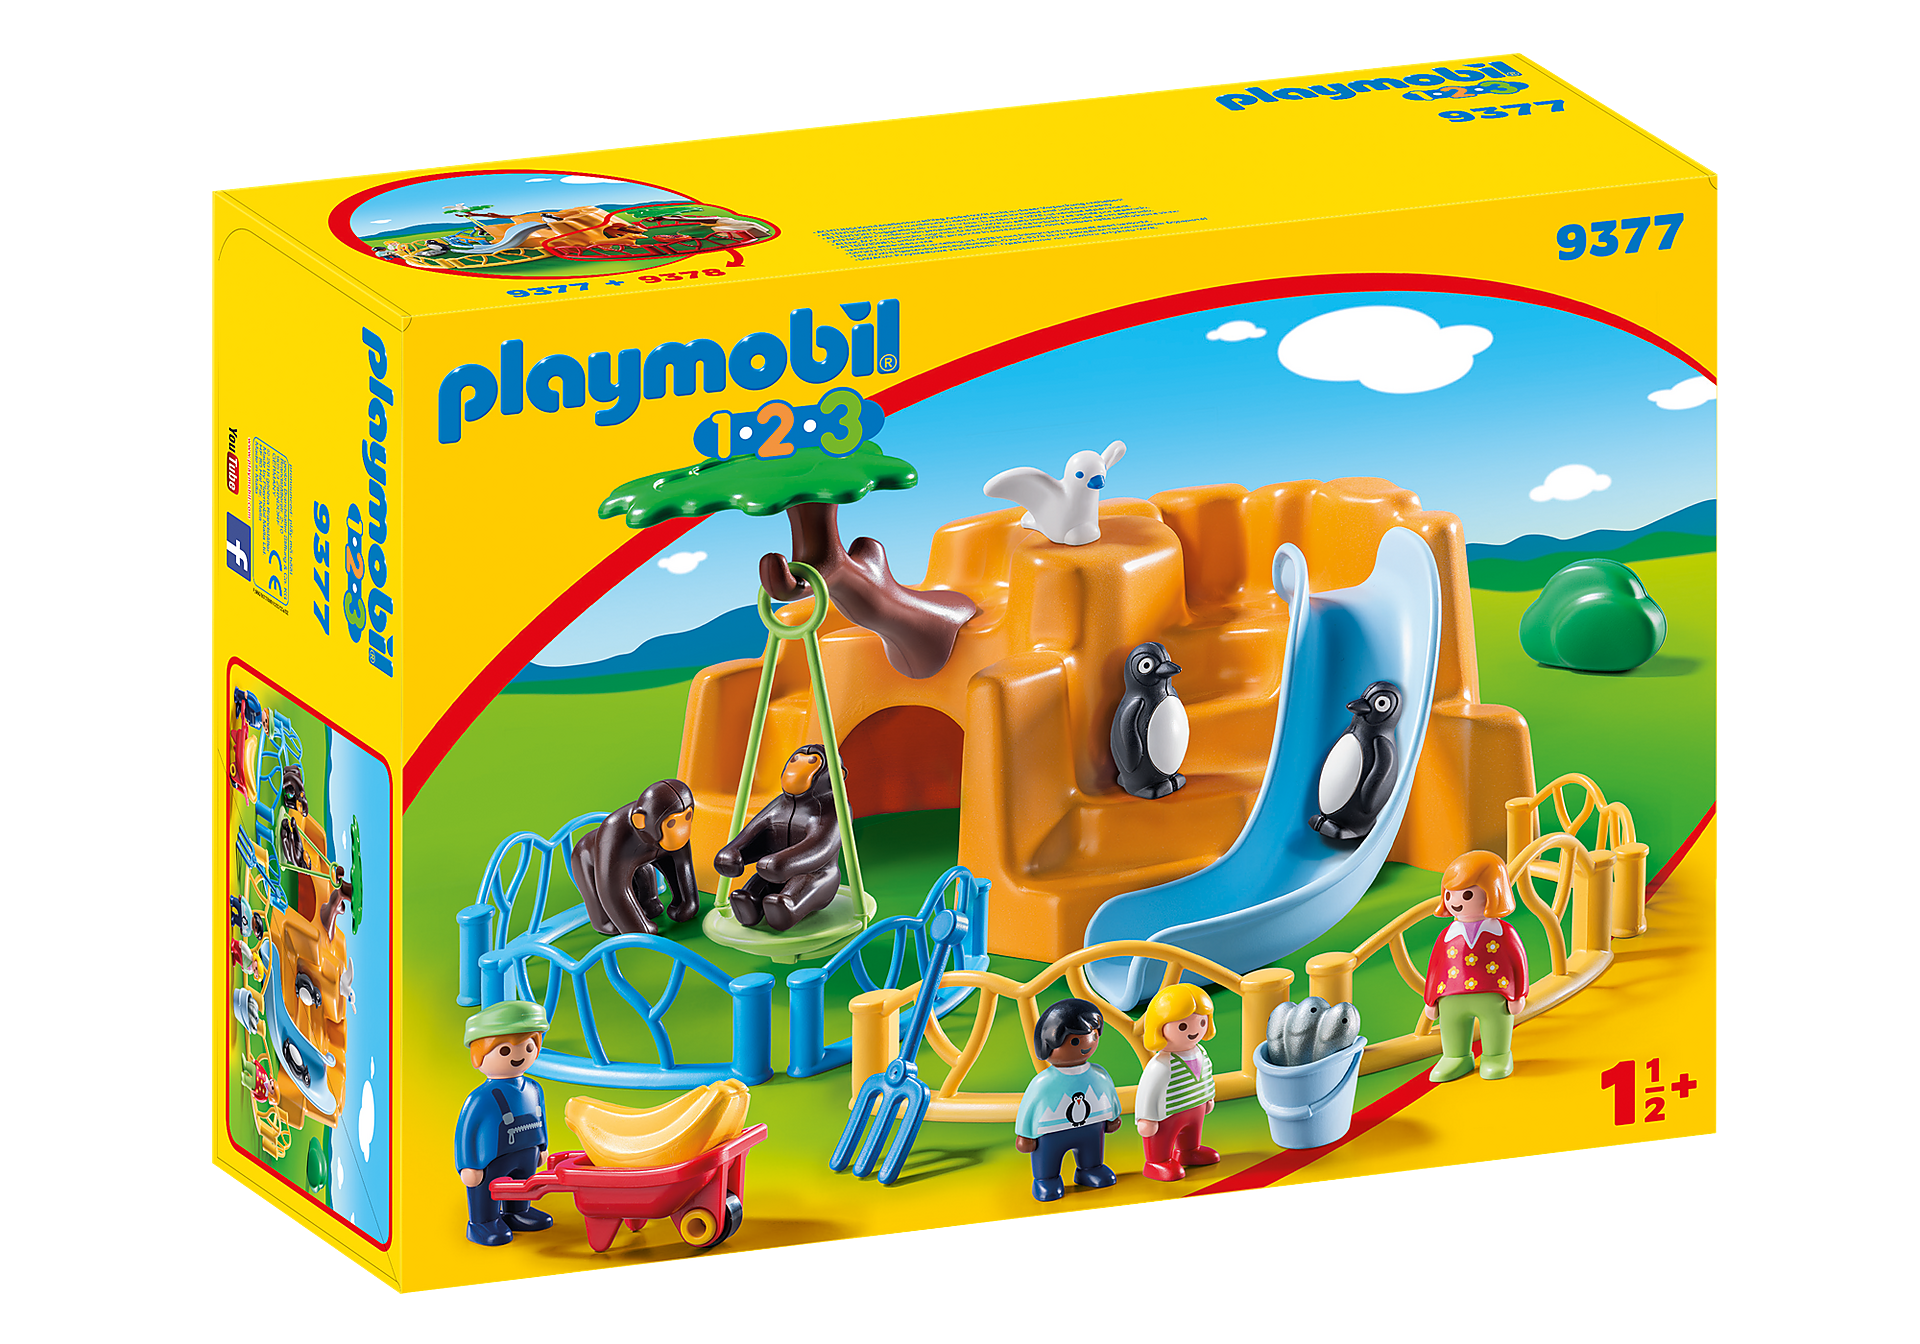 http://media.playmobil.com/i/playmobil/9377_product_box_front/Zoo